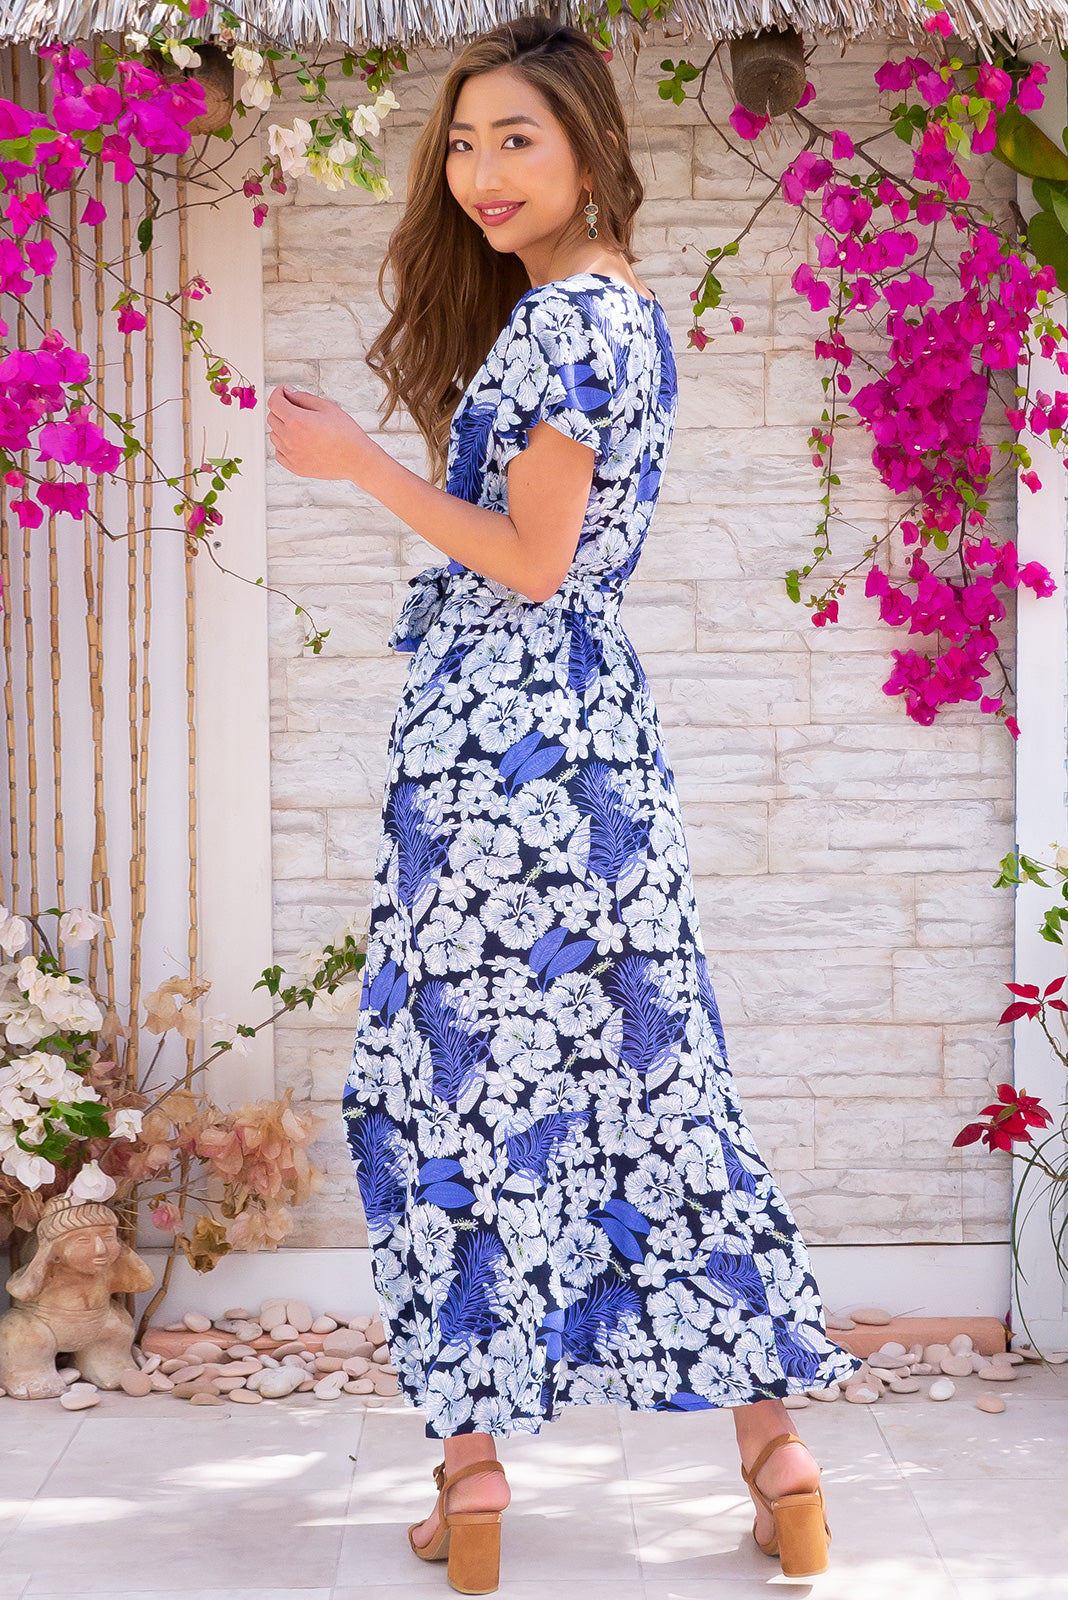 Phinda Blue Island Maxi Wrap Dress, 100 % rayon, bohemian summer style, side pockets, adjustable wrap design, elasticated back waistband, navy base with large white and blue floral print.